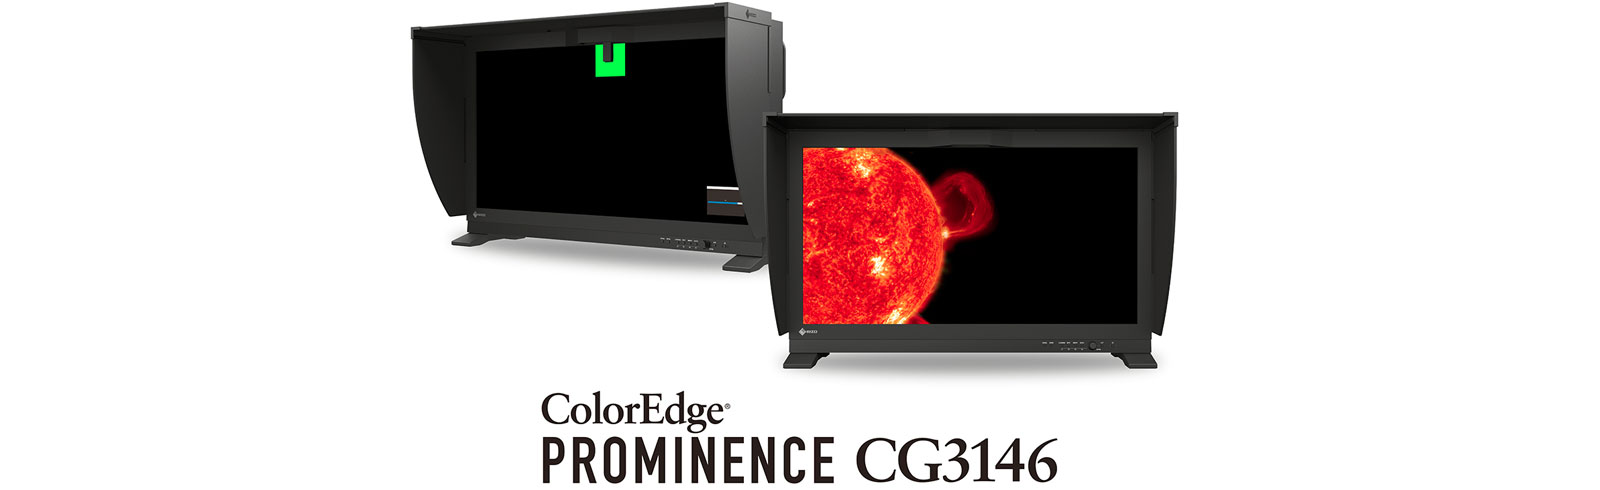 Eizo ColorEdge Prominence CG3146 is the world's first true HDR reference monitor with built-in calibration sensor